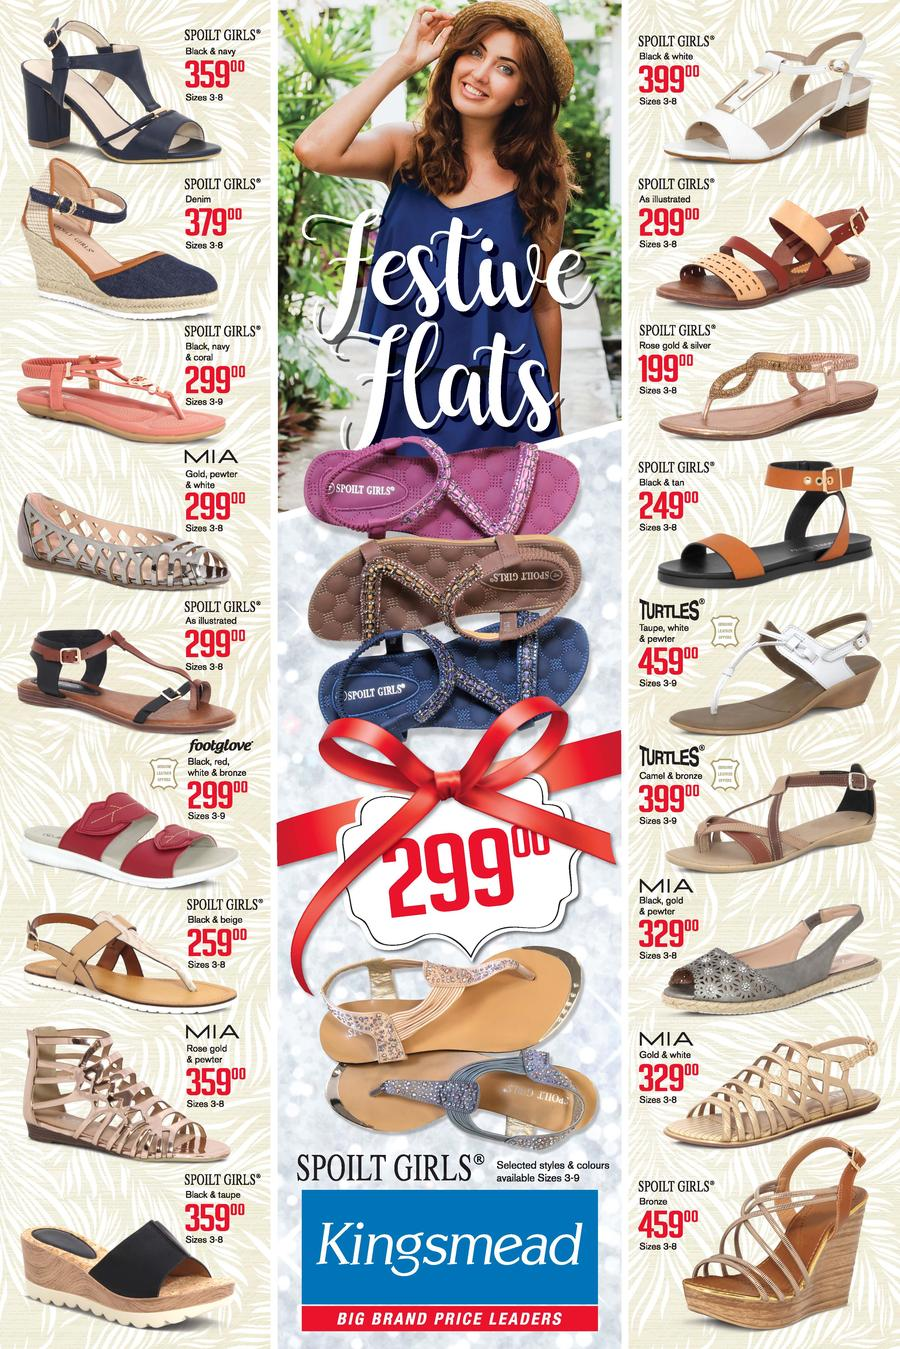 Kingsmead Shoes (2 Dec - 15 Dec 2016)